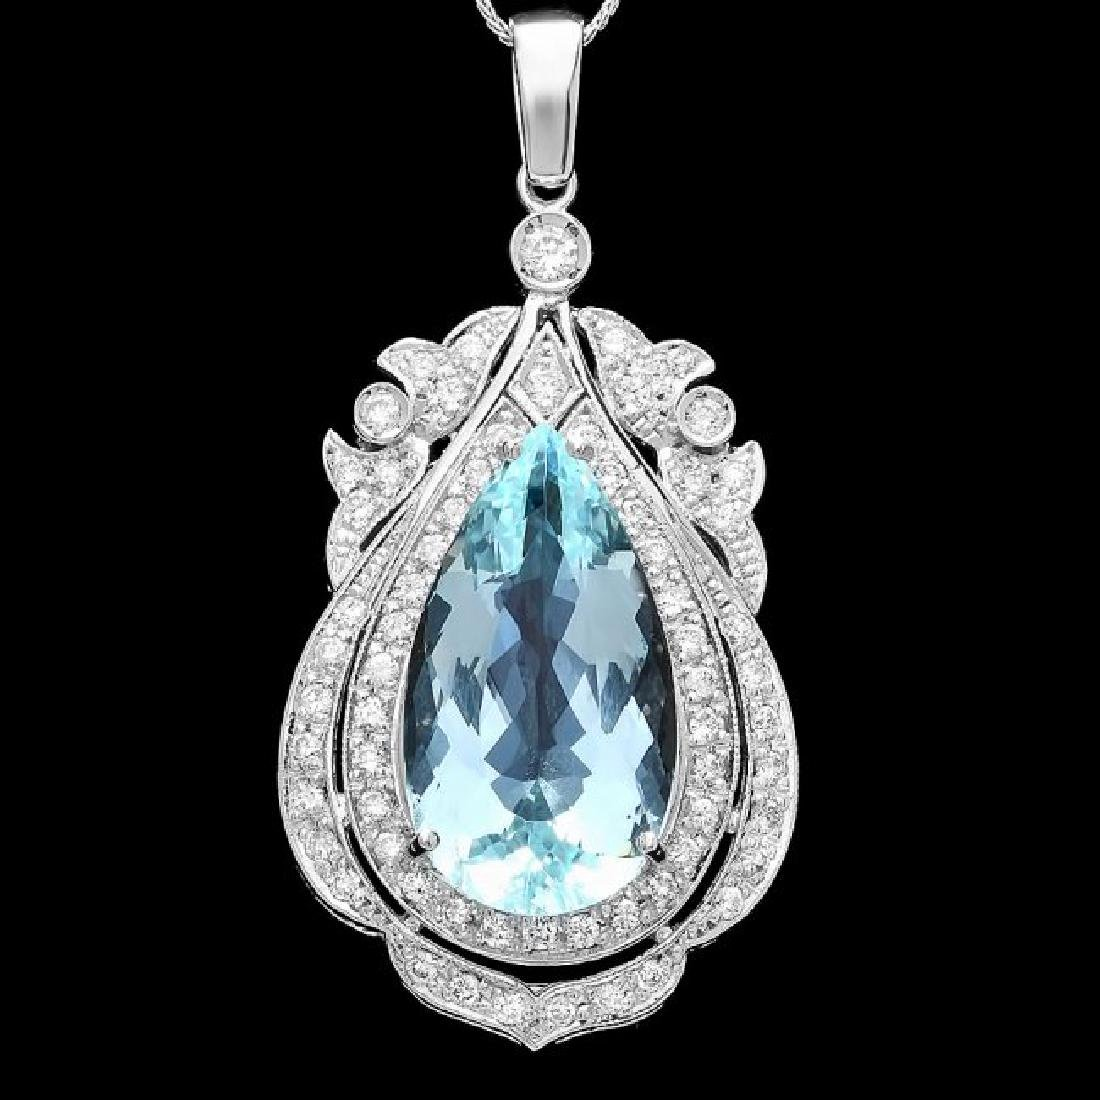 14k Gold 18ct Aquamarine 1.8ct Diamond Pendant